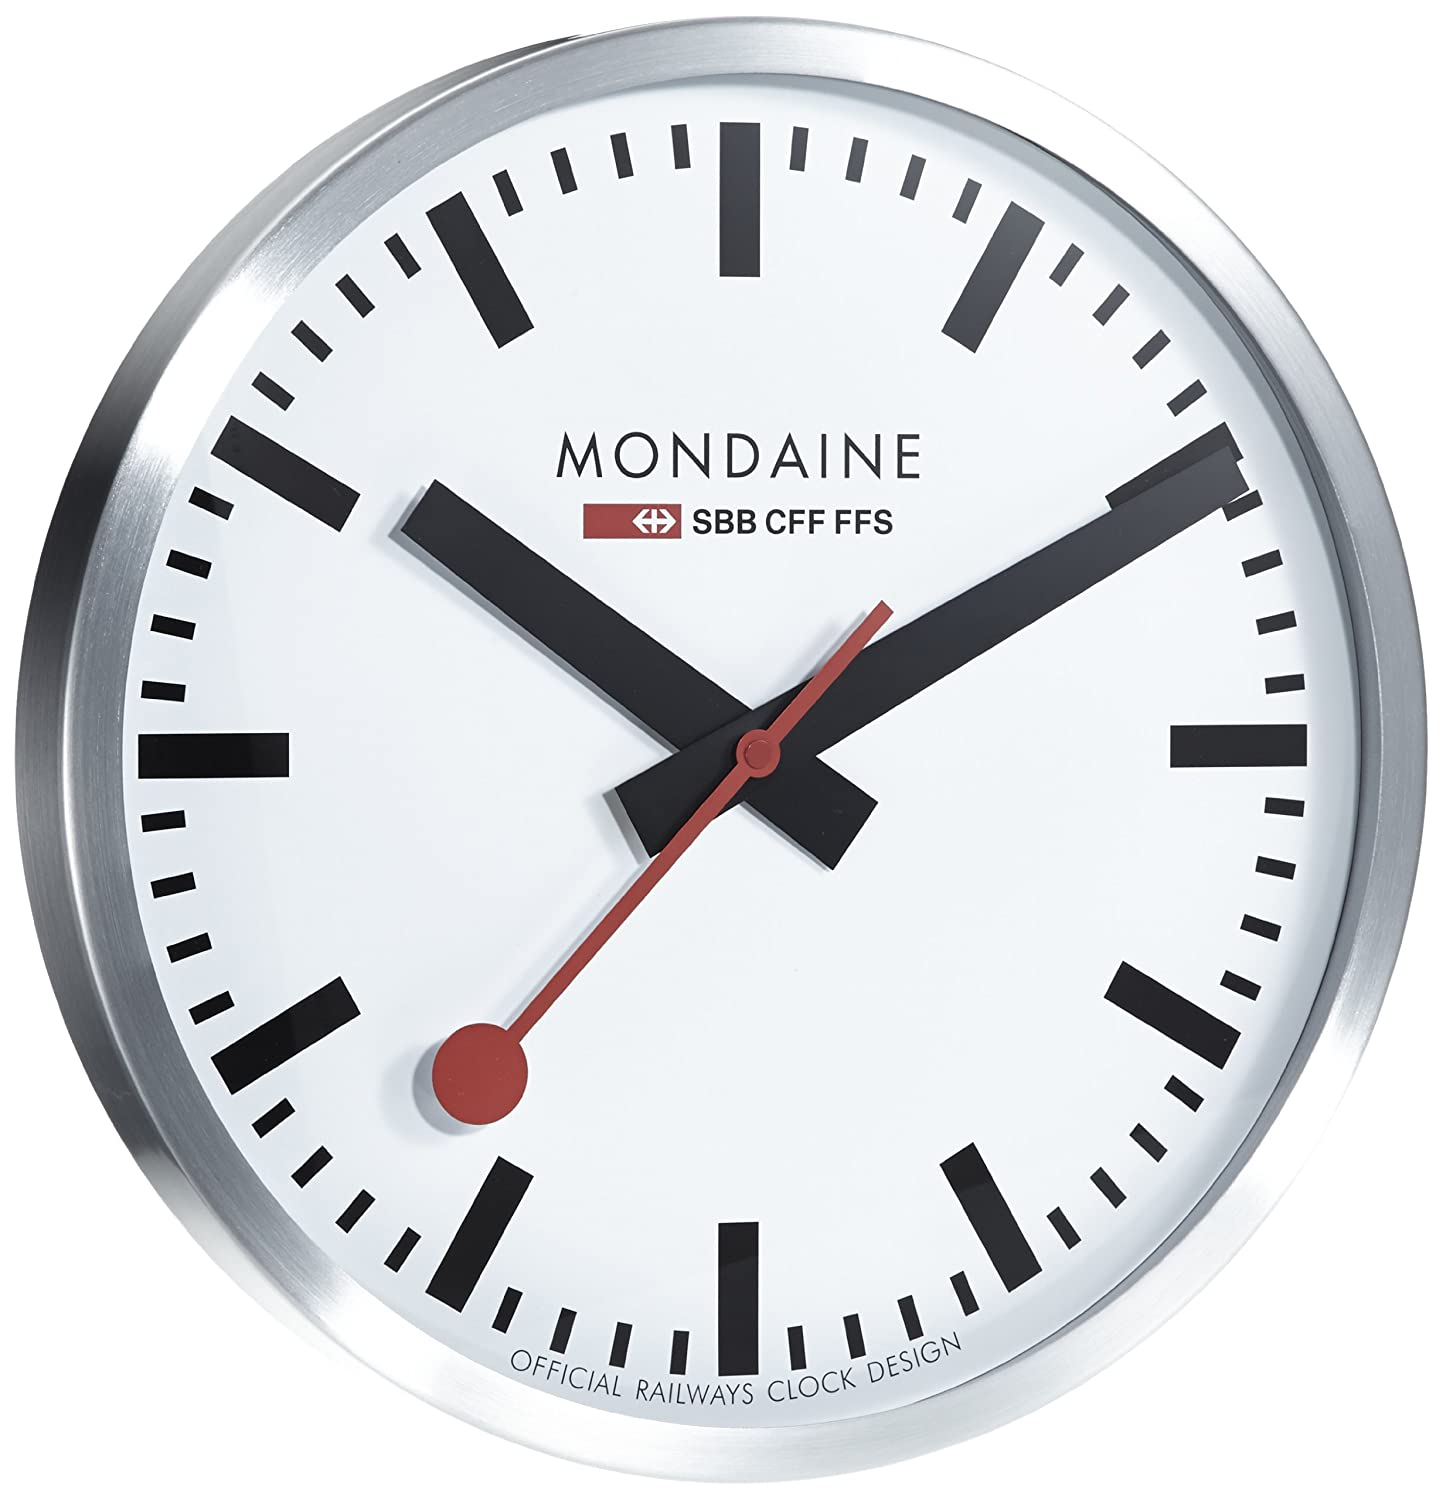 Amazon.com: Mondaine A995. Clock. 16SBB Reloj de pared Gran ...